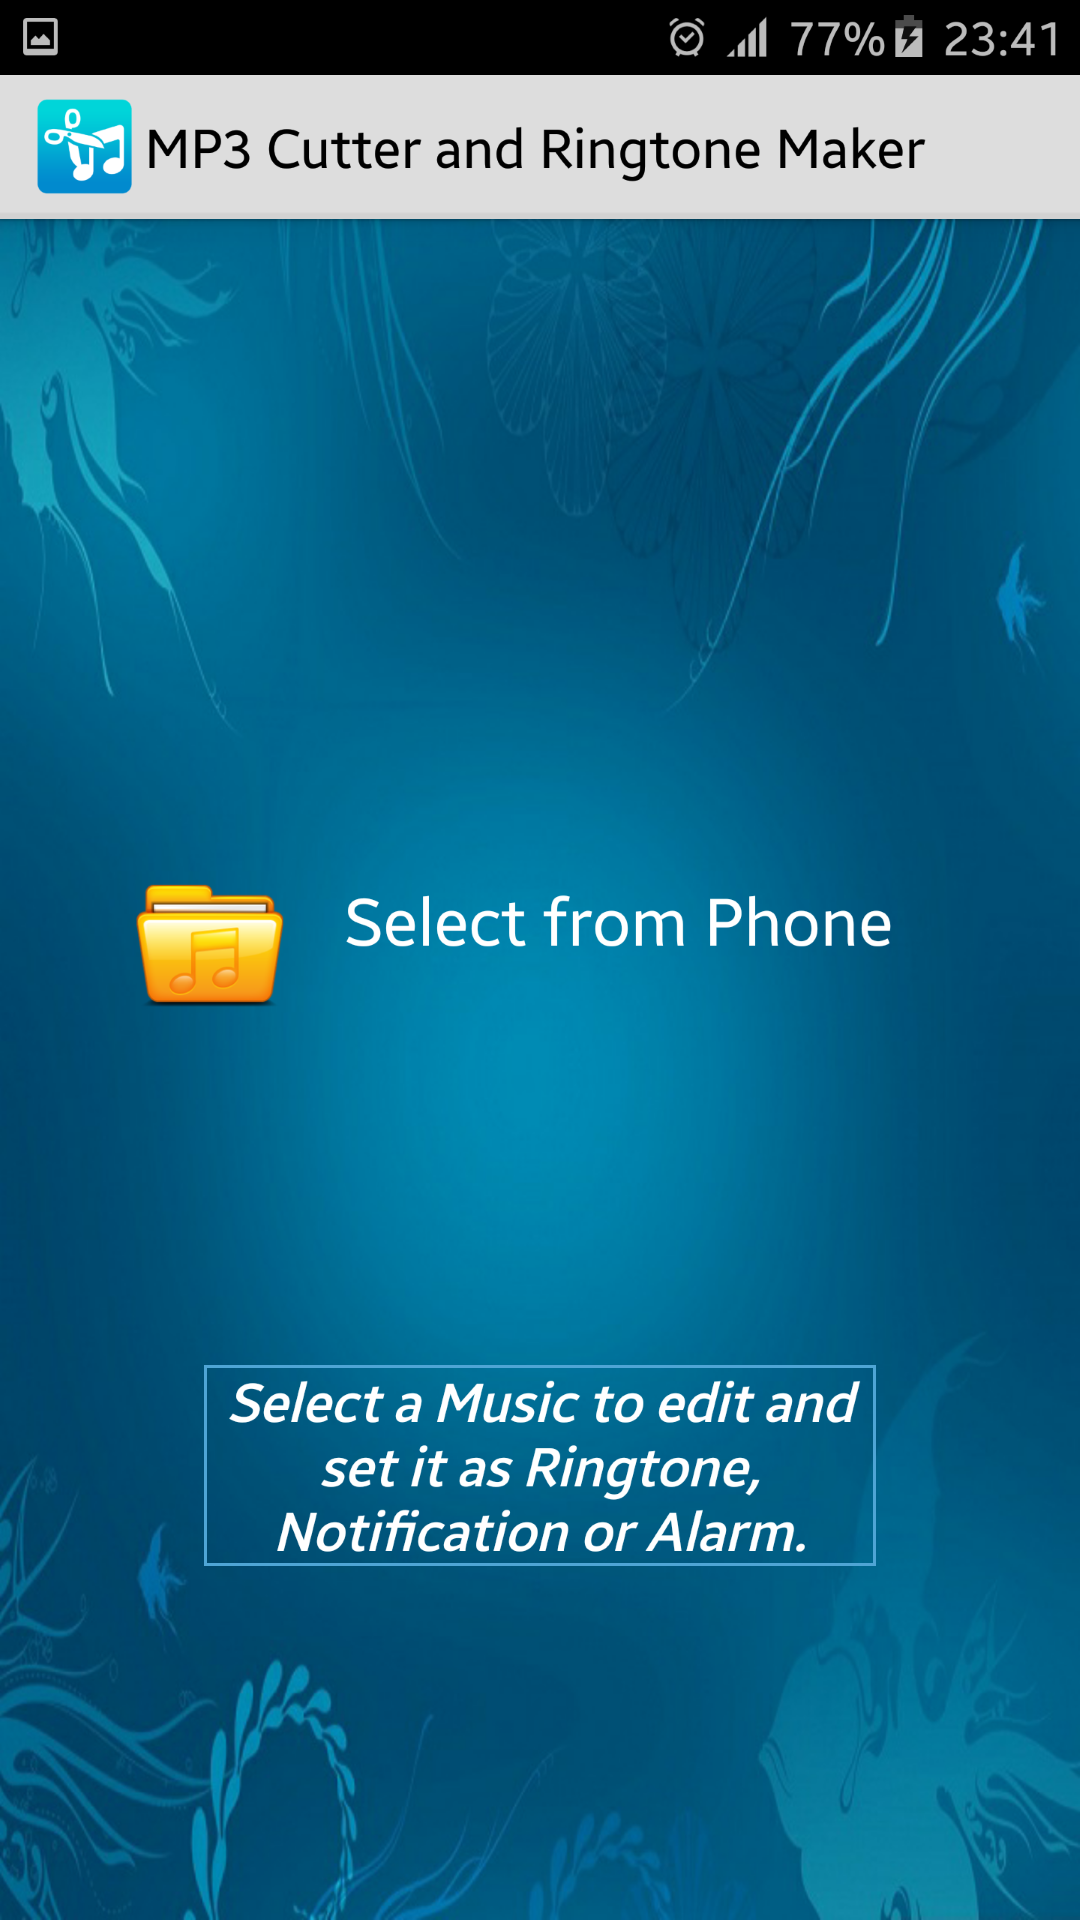 mp3 cutter and ringtone maker apk 2.0